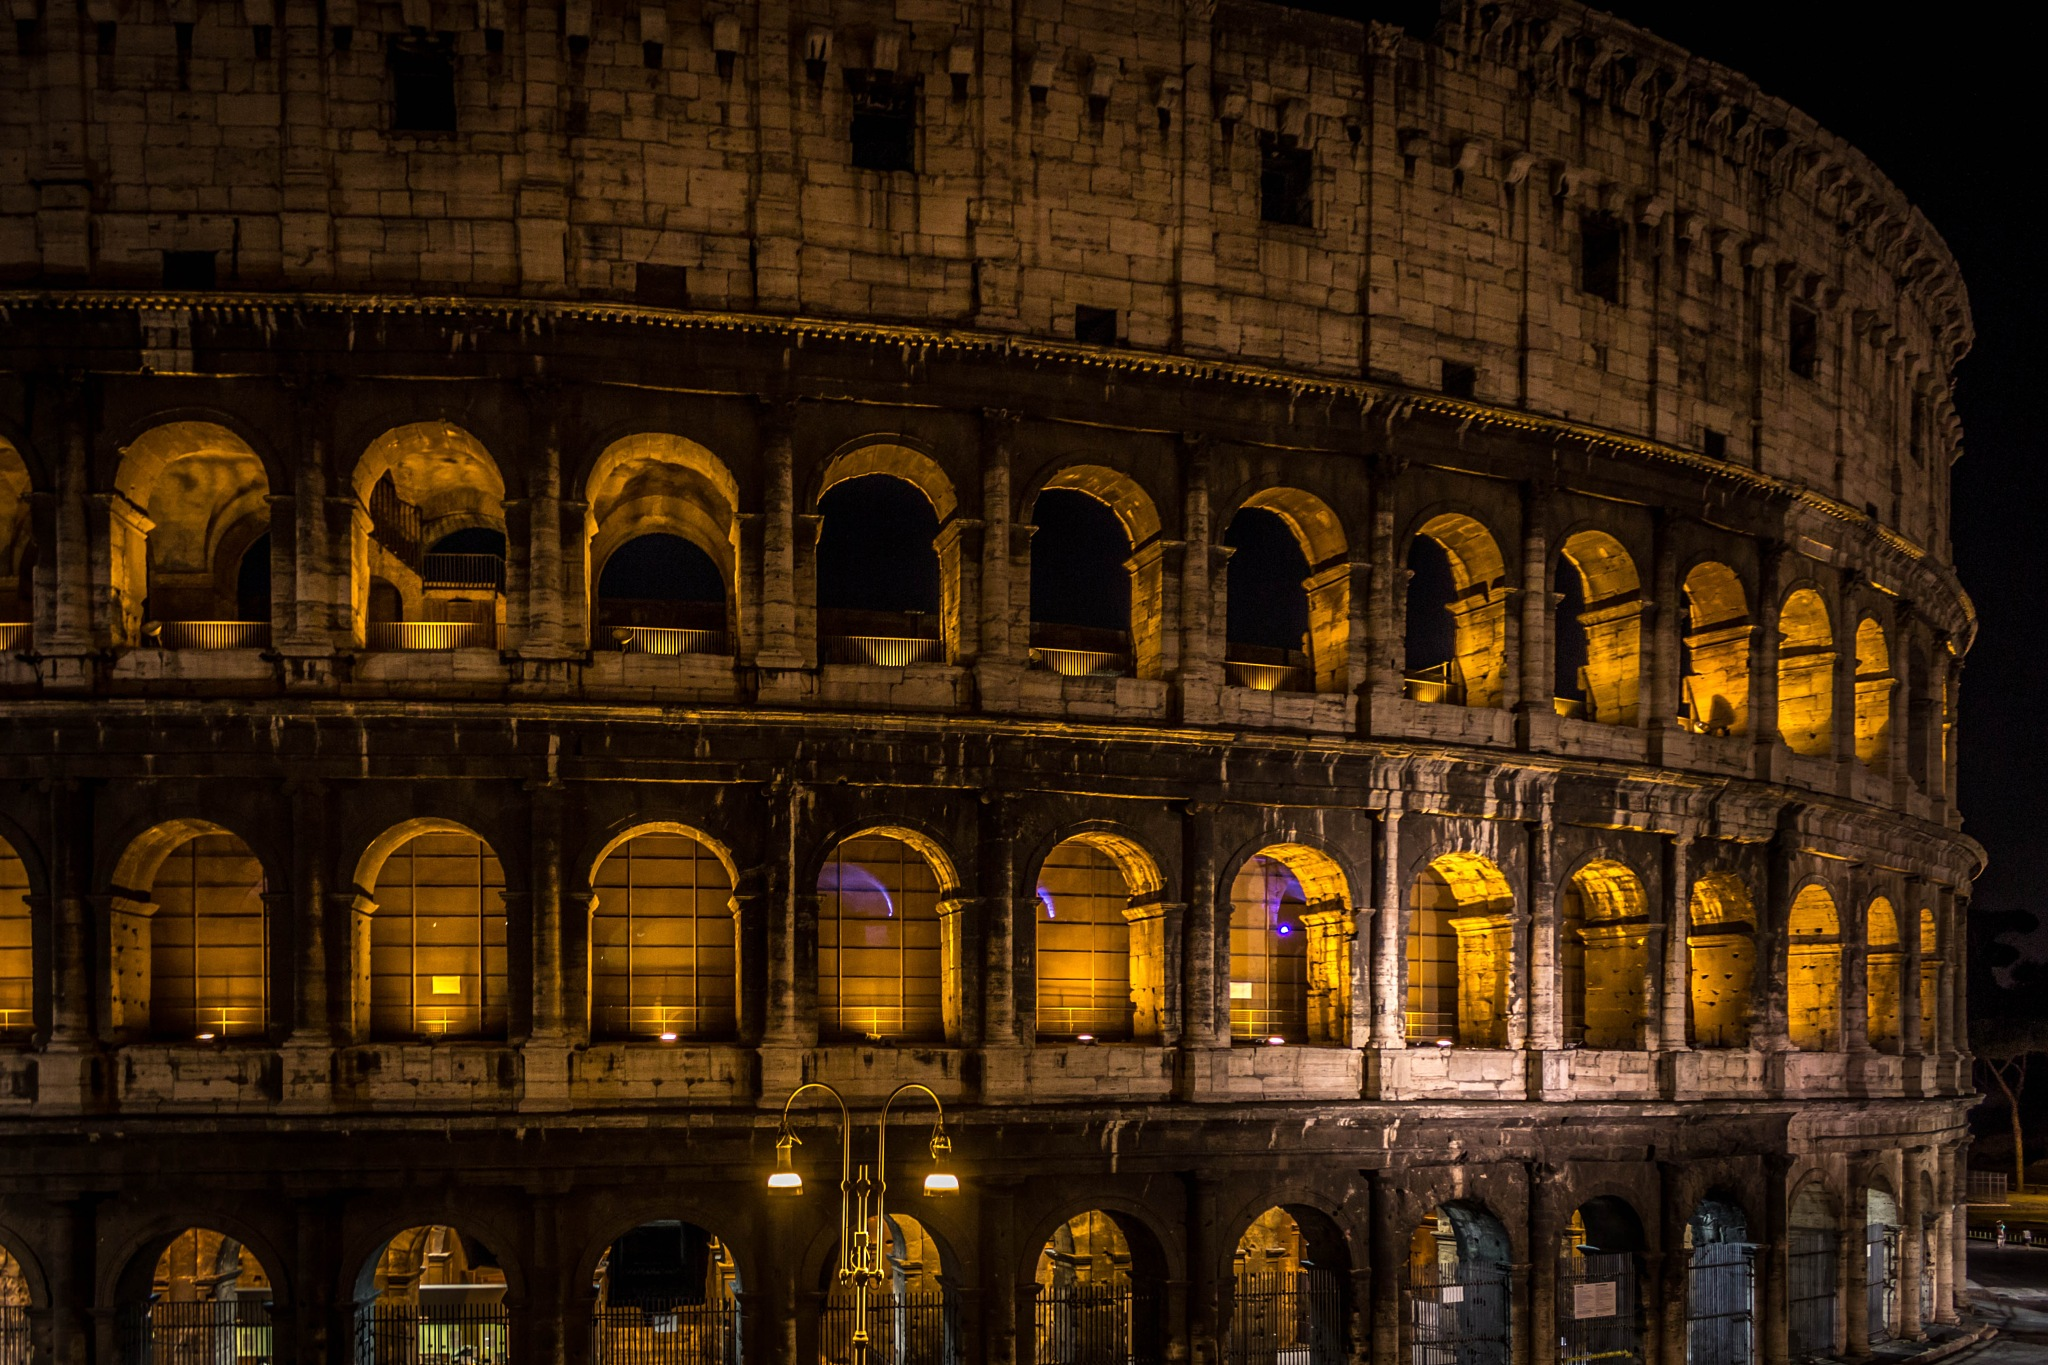 Colosseo di Roma by Samuel Domingues